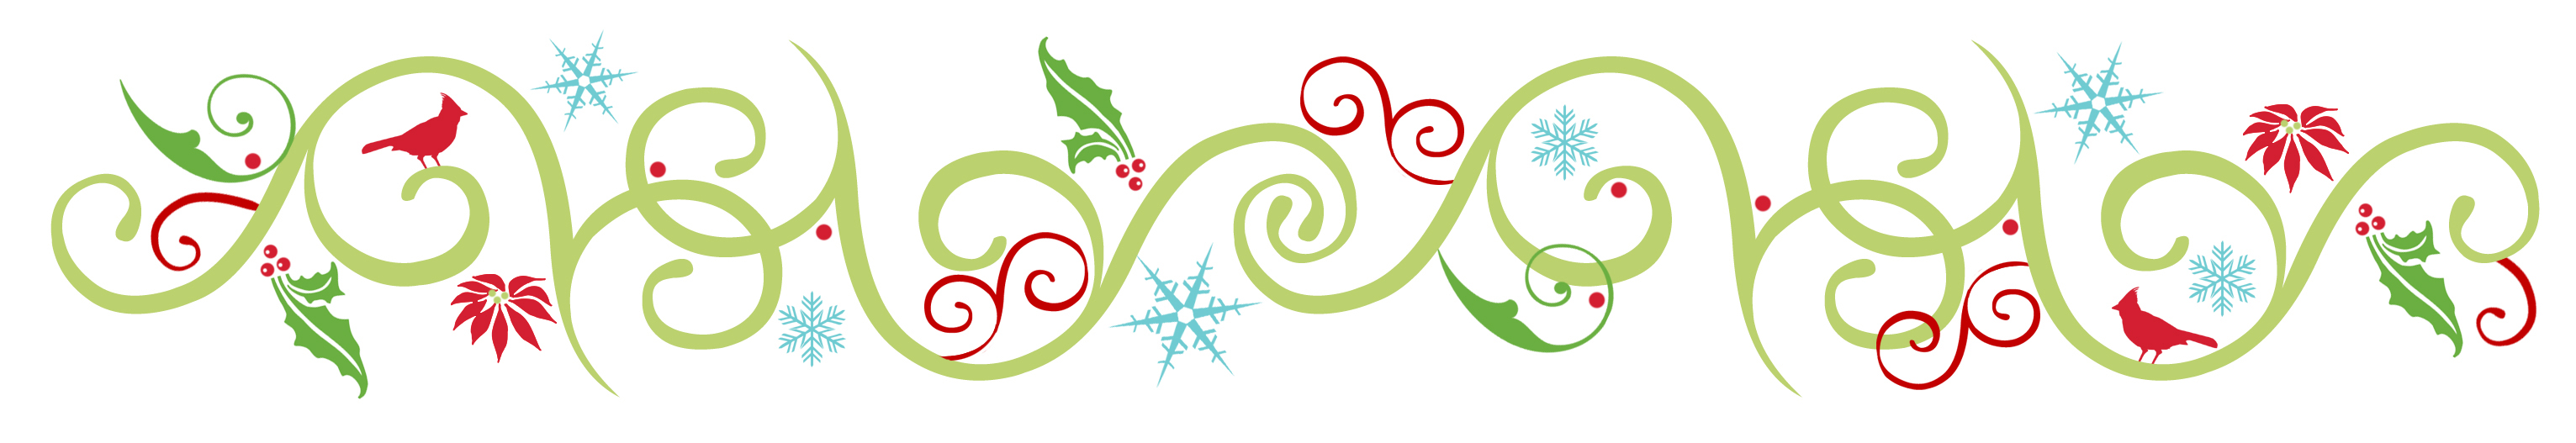 Christmas Advent Clipart 20 Free Cliparts Download Images